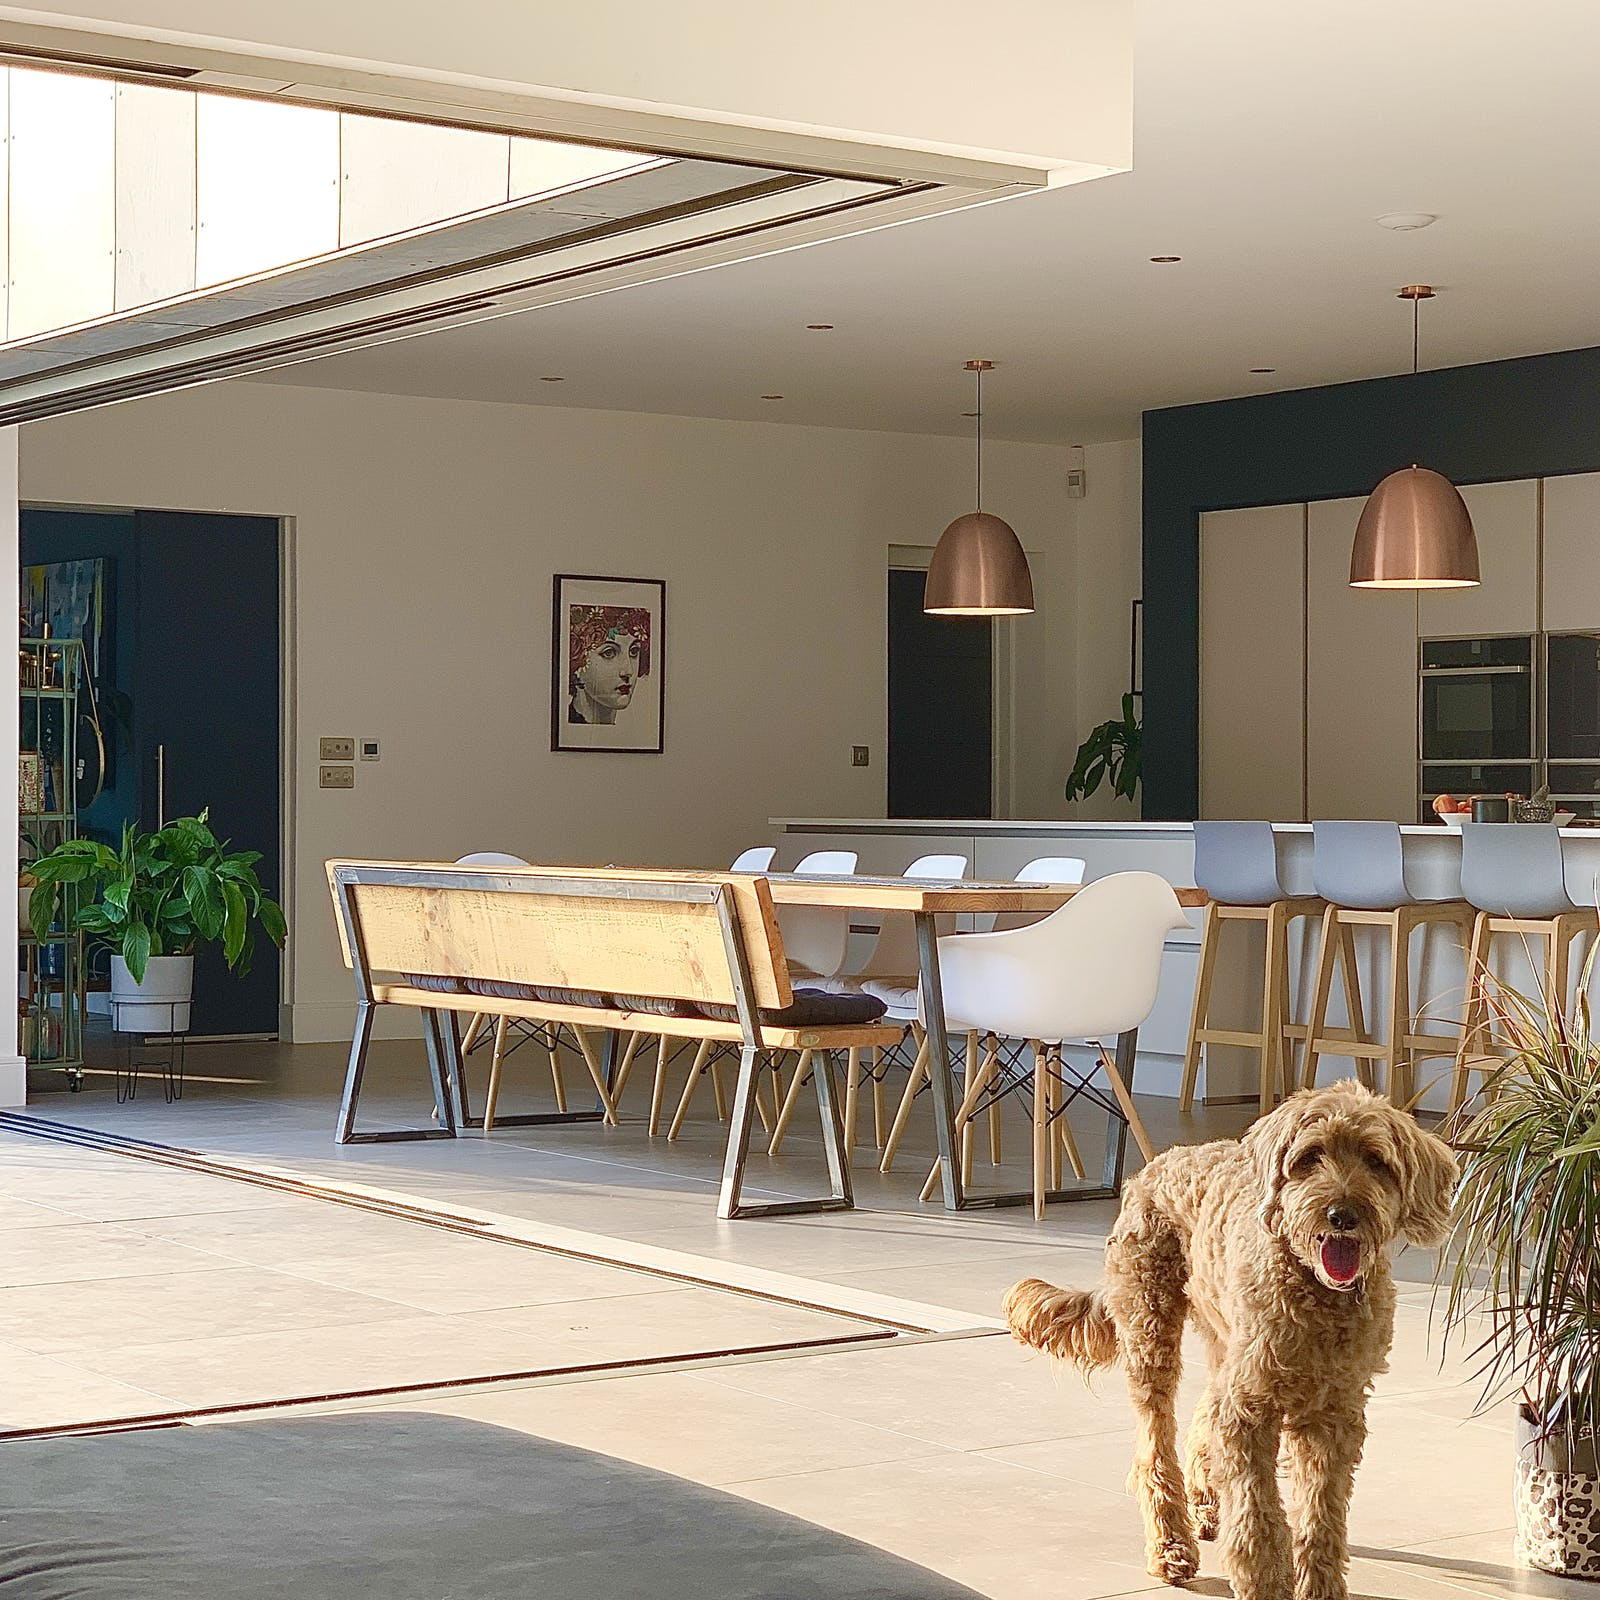 Open plan kitchen and dining room with open sliding doors, and a dog in the forefront of the image.